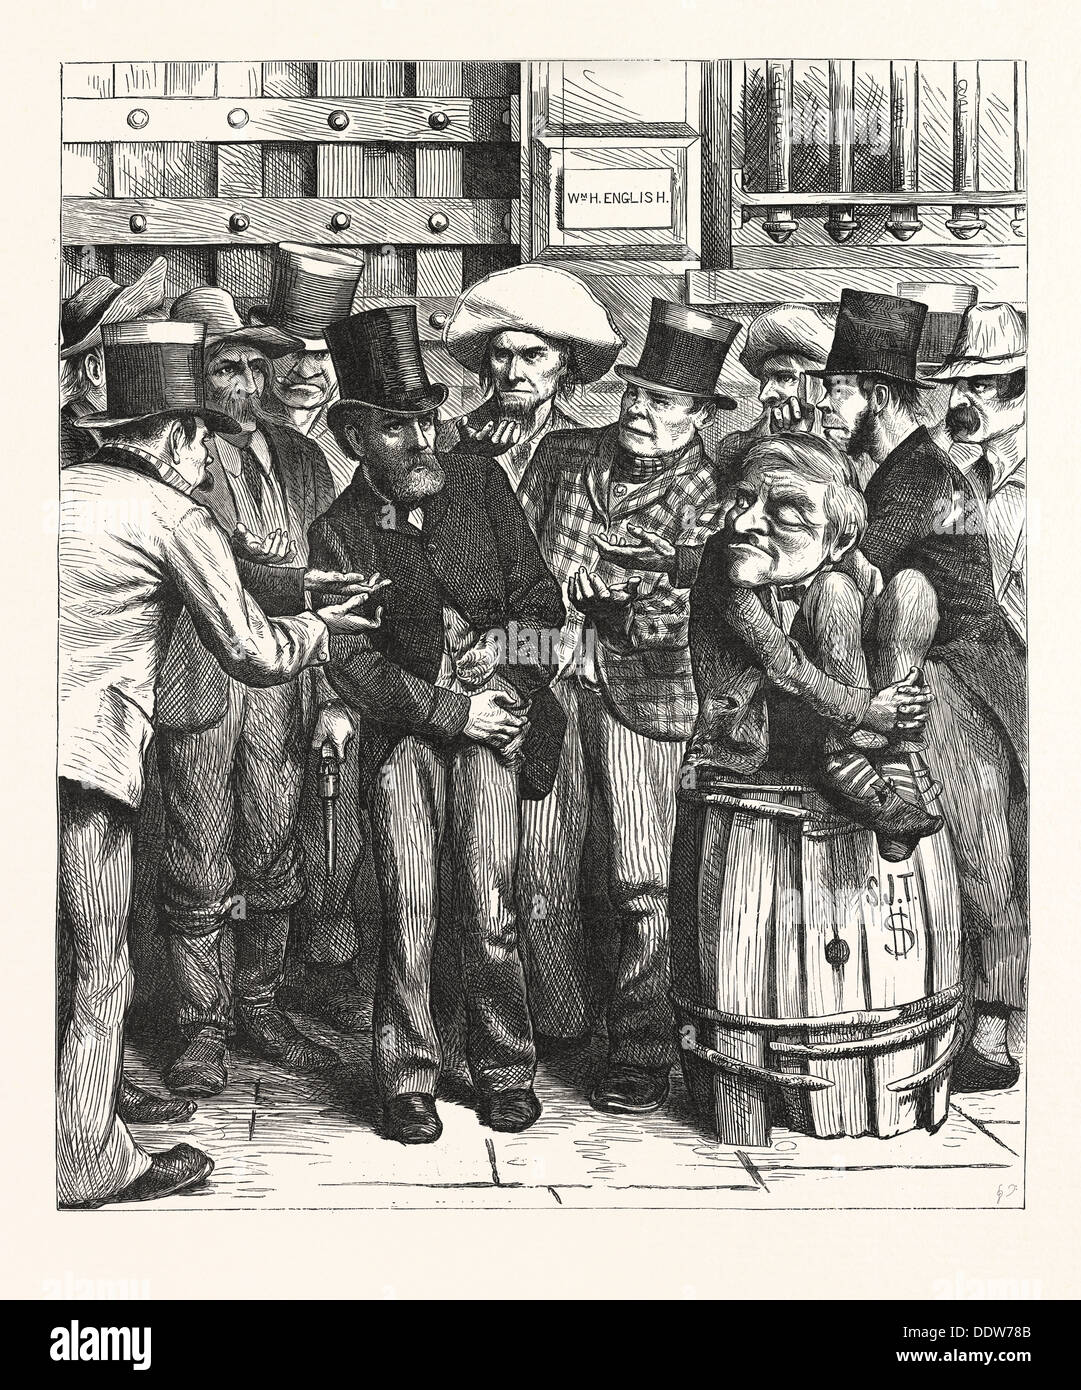 CHORUS HUNGRY DEMOCRATS. 'Come, Bill, fork the needful. you think we'll work you for? us, usa, engraving 1880 - Stock Image